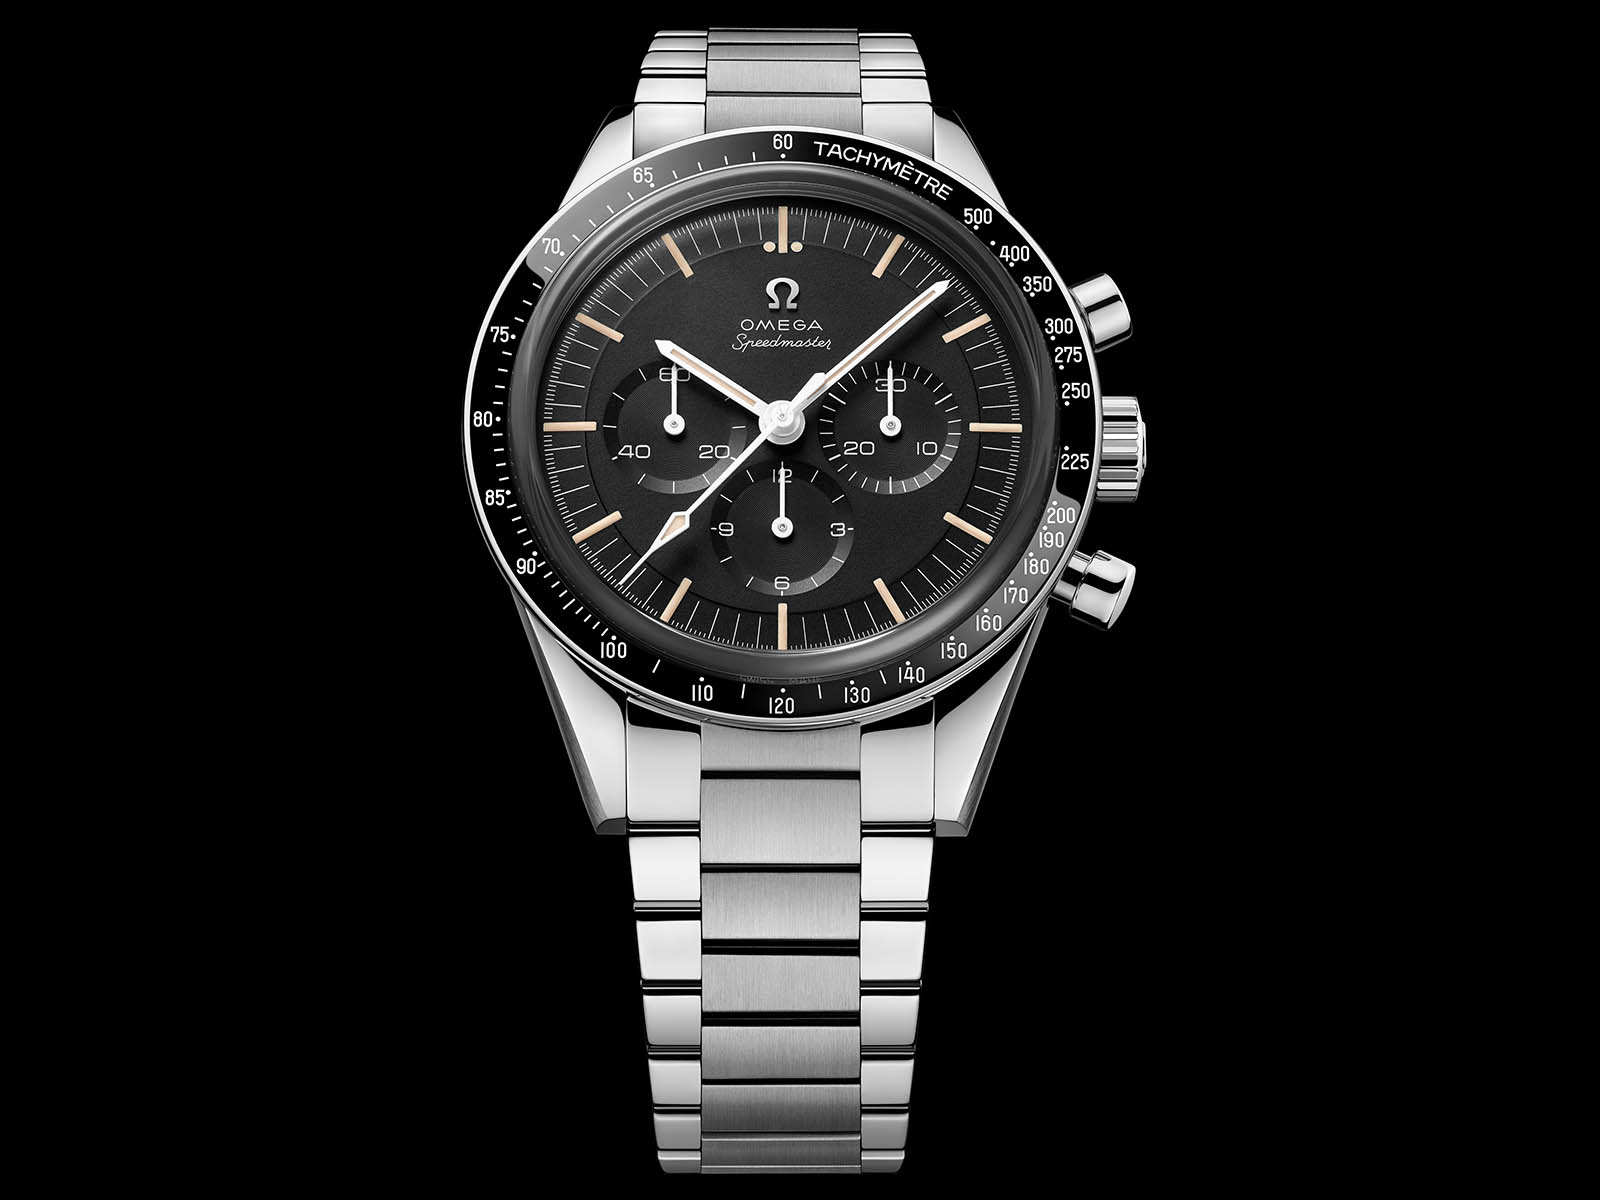 311-30-40-30-01-001-omega-speedmaster-moonwatch-chronograph-39-7-mm-4.jpg